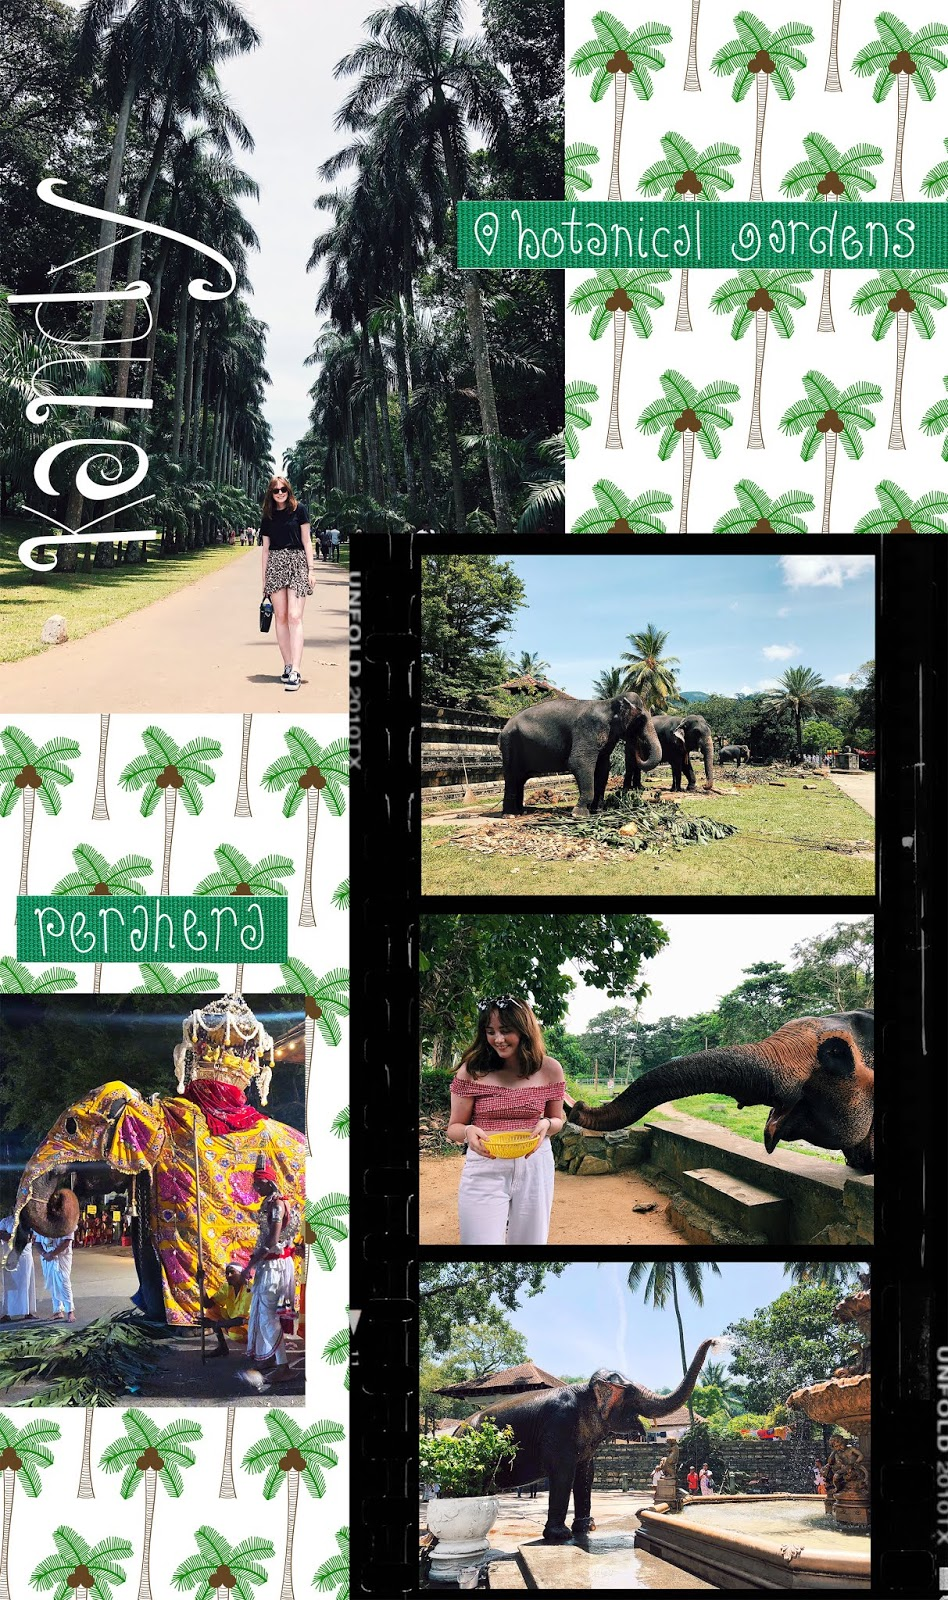 a collage of photos from Kandy, including palm trees at the botanical gardens and elephants, including perahera elephants, on an illustrated palm tree print background